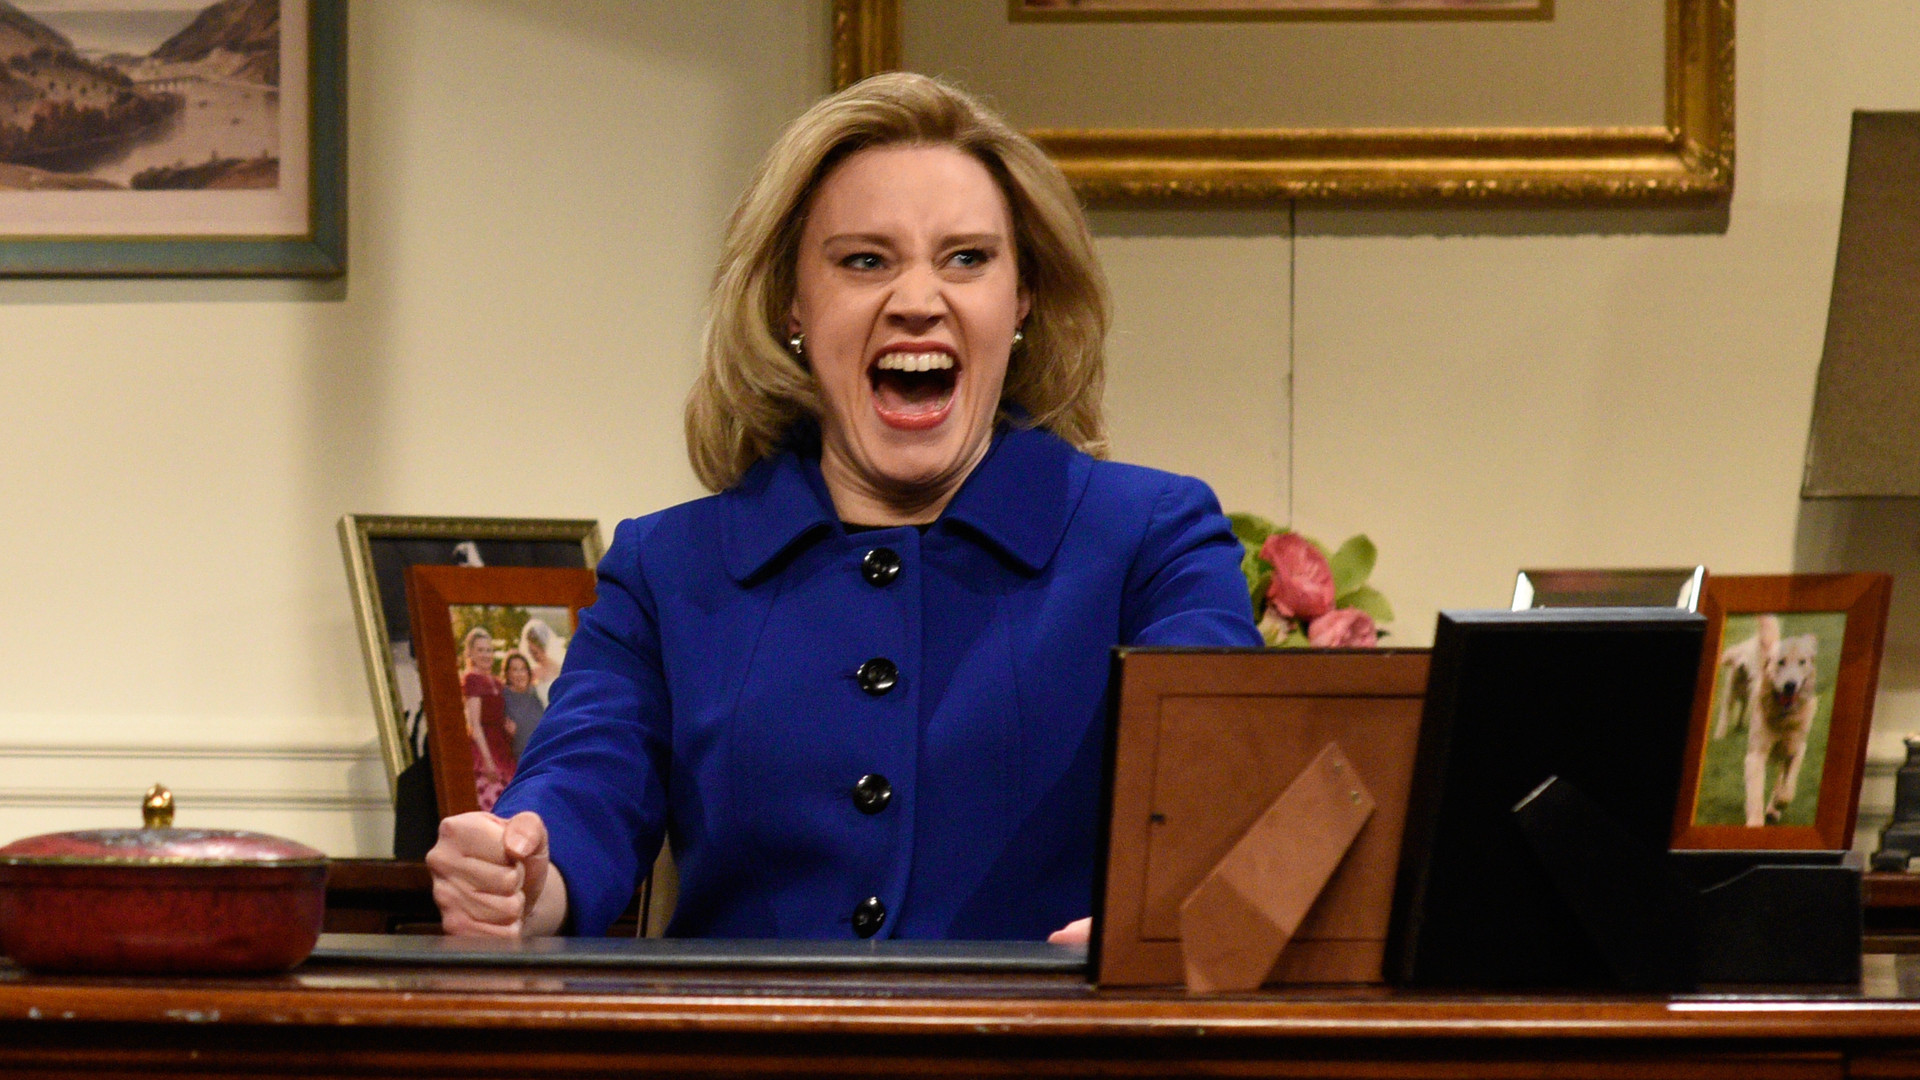 1920x1080 'SNL's' Kate McKinnon on Hillary Clinton: 'I just love her so dearly' - LA  Times